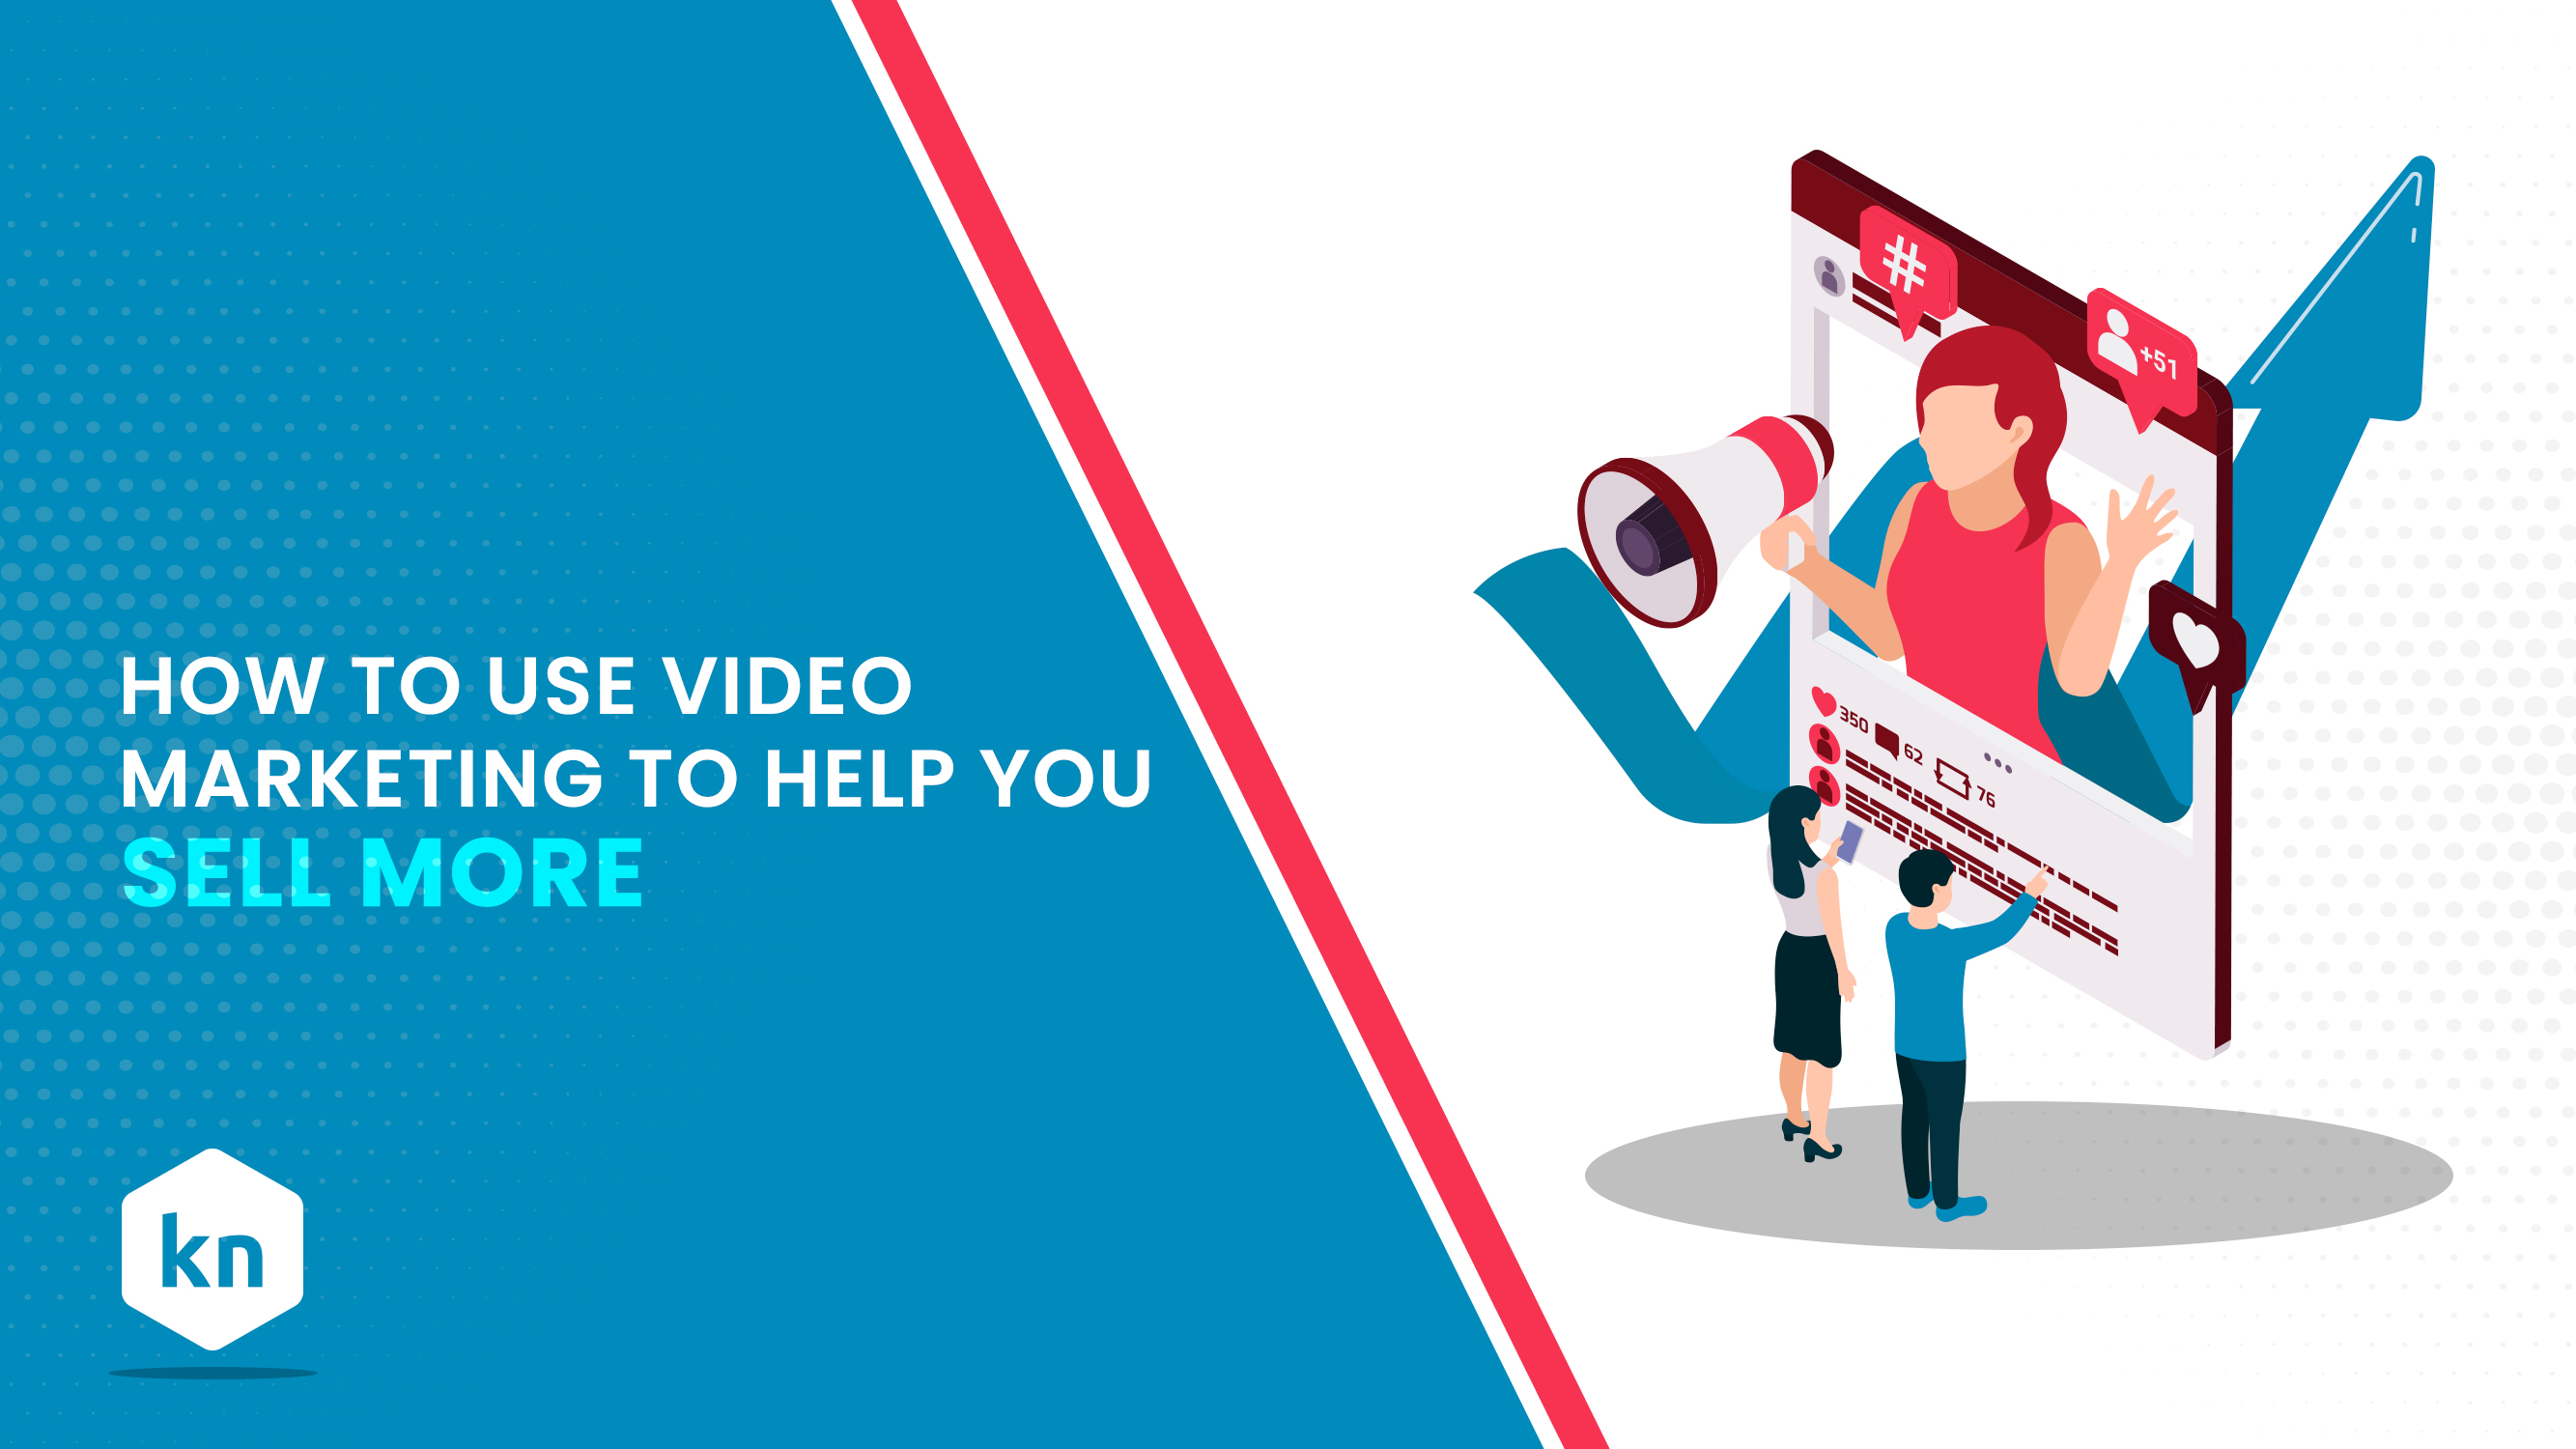 Como usar o Video Marketing para ajudá-lo a vender mais